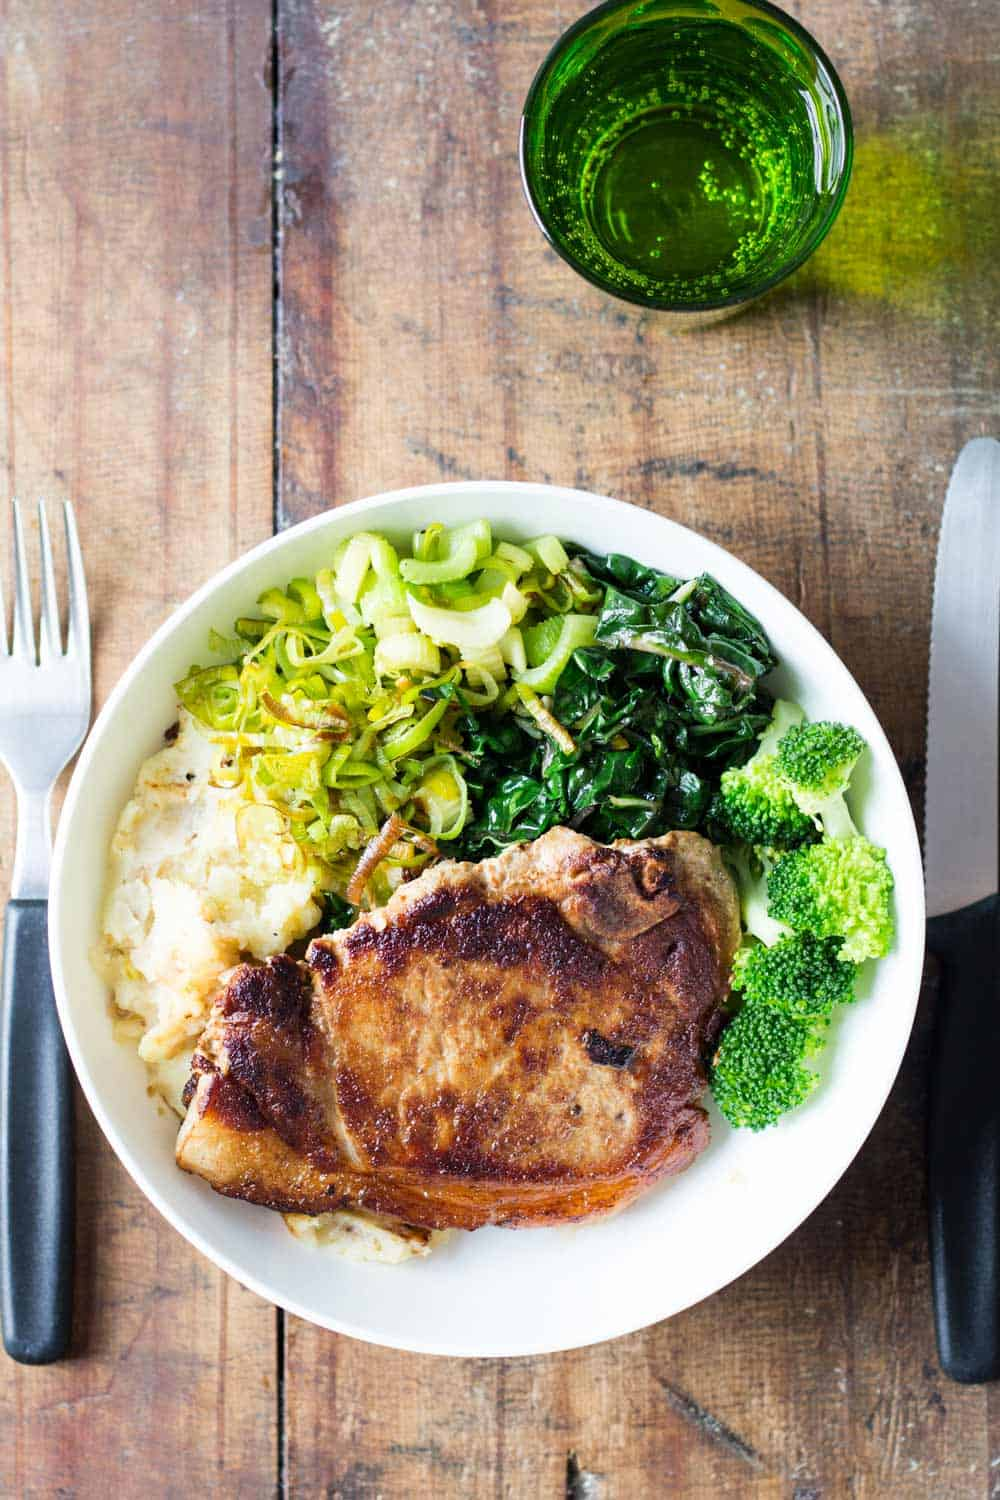 Perfect Pork Chop with mashed potatoes, celery, chard and broccoli, on a wooden table with a fork and knife, and a glass of water.